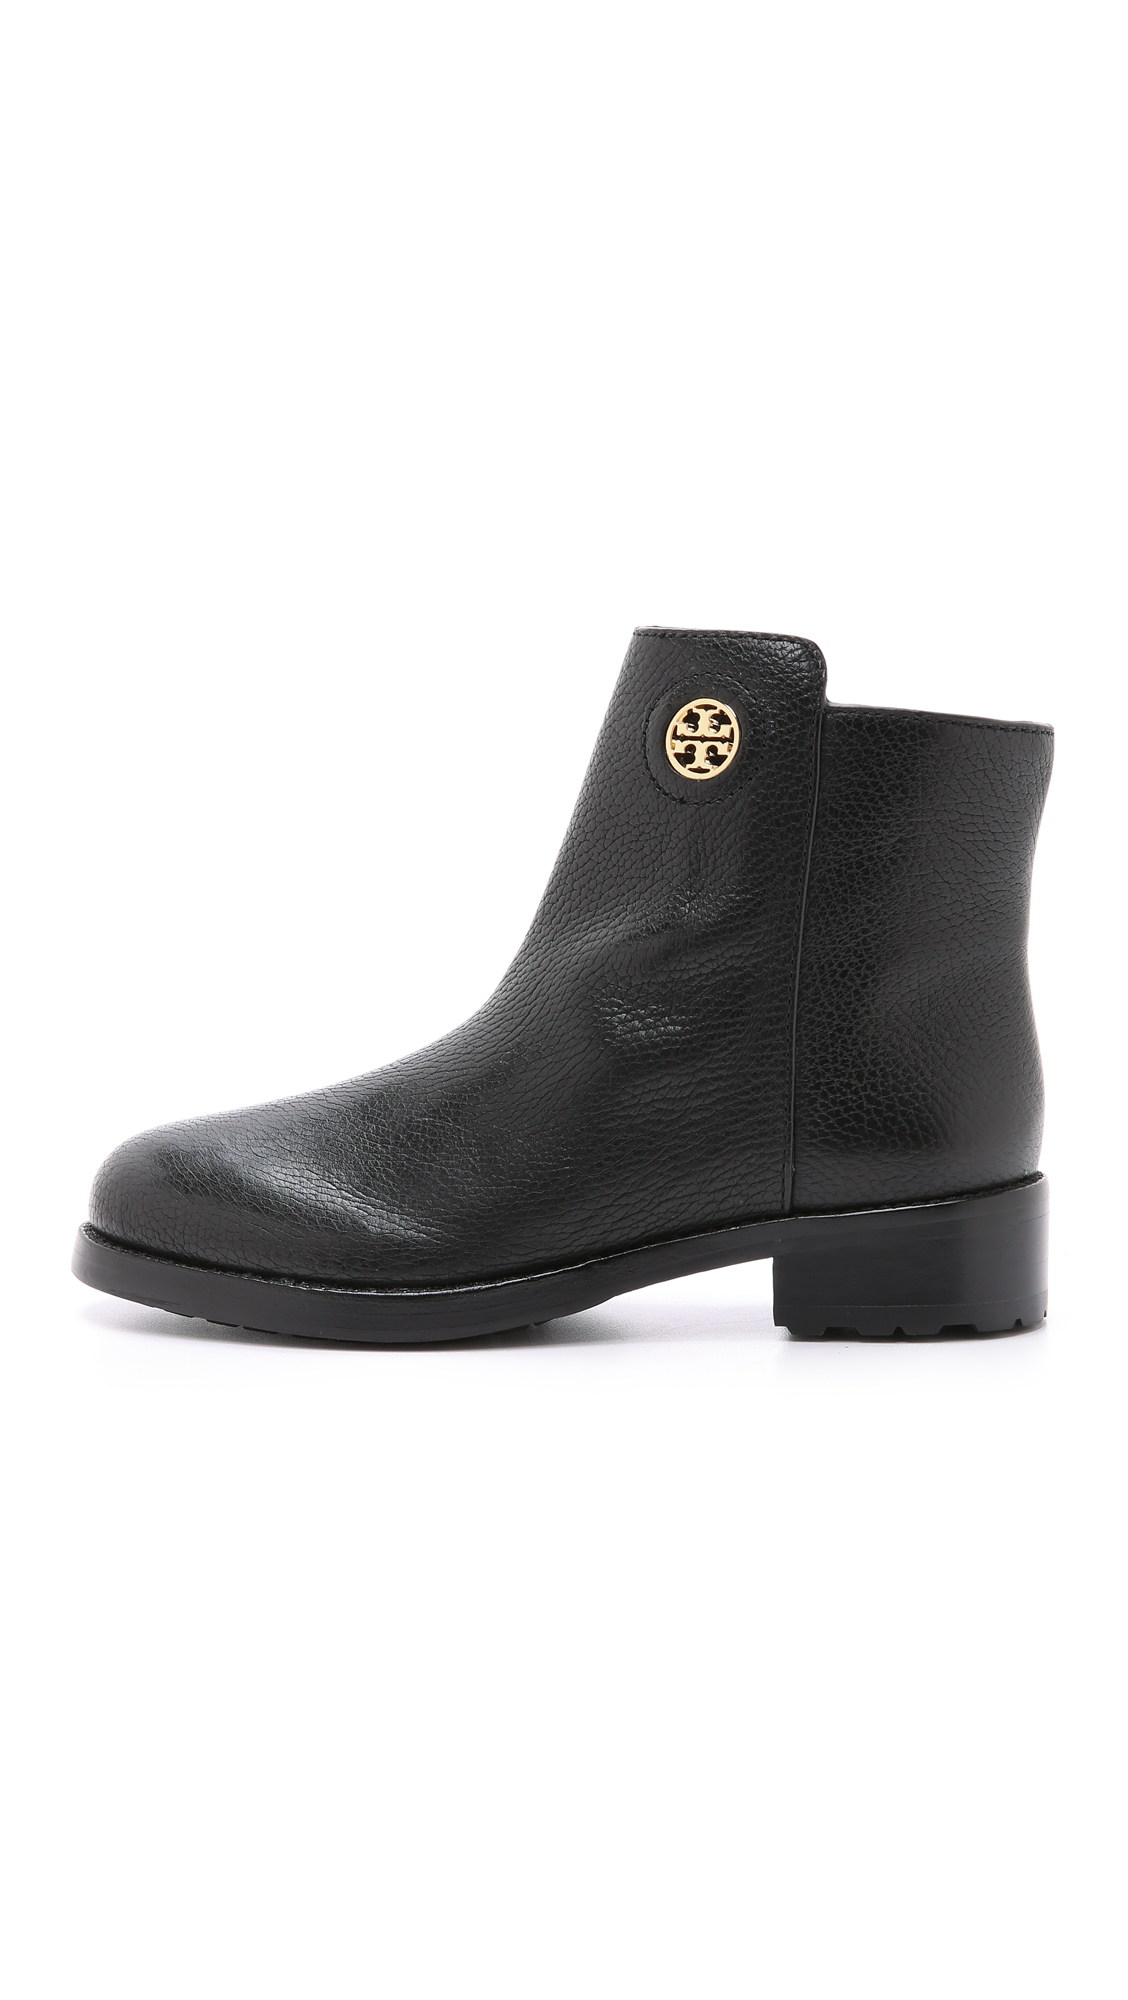 c34ffc4284043d ... best price lyst tory burch junction booties porcini in black 7bffe 3e2e2